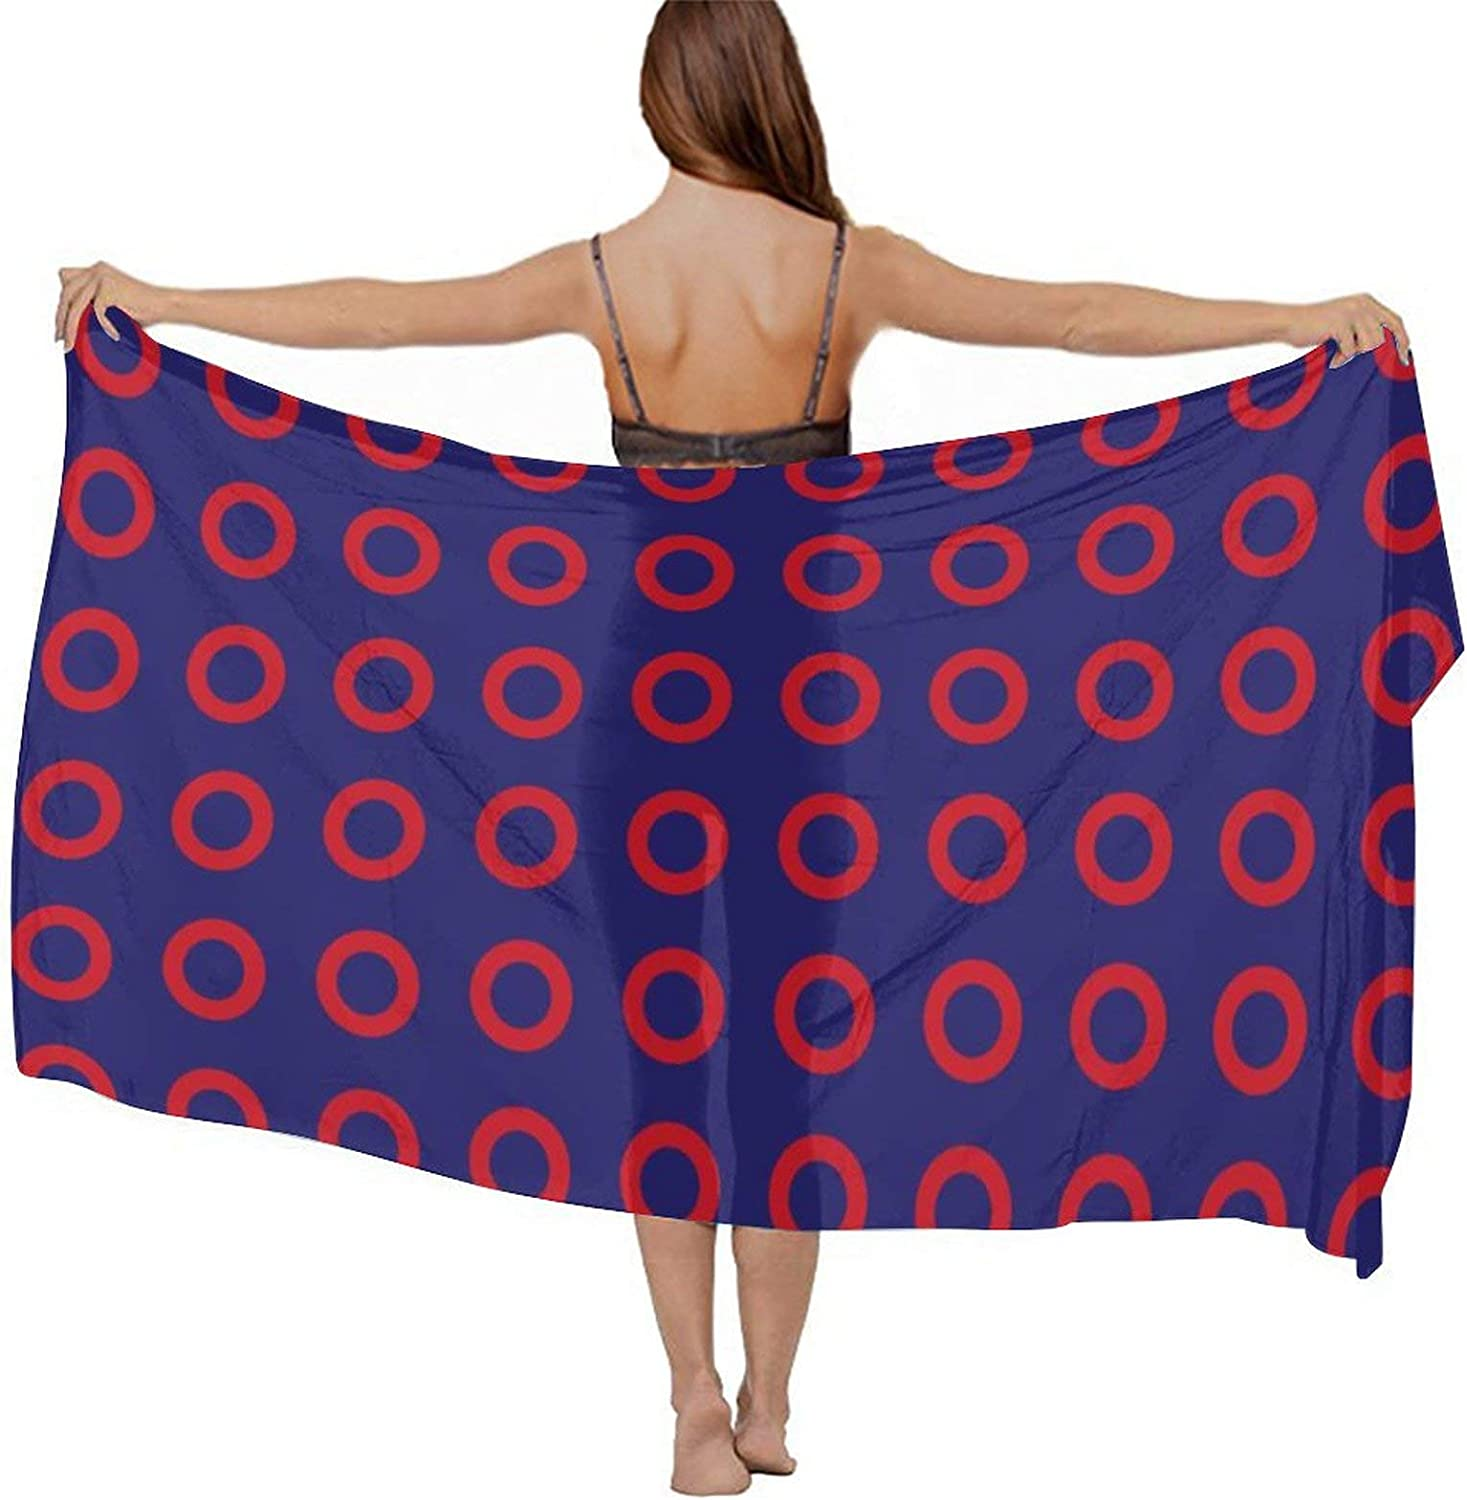 Beach Cover Up Warp Scarf Swimsuit Sarongs Sunscreen Pareos for Beach Wedding, Holiday